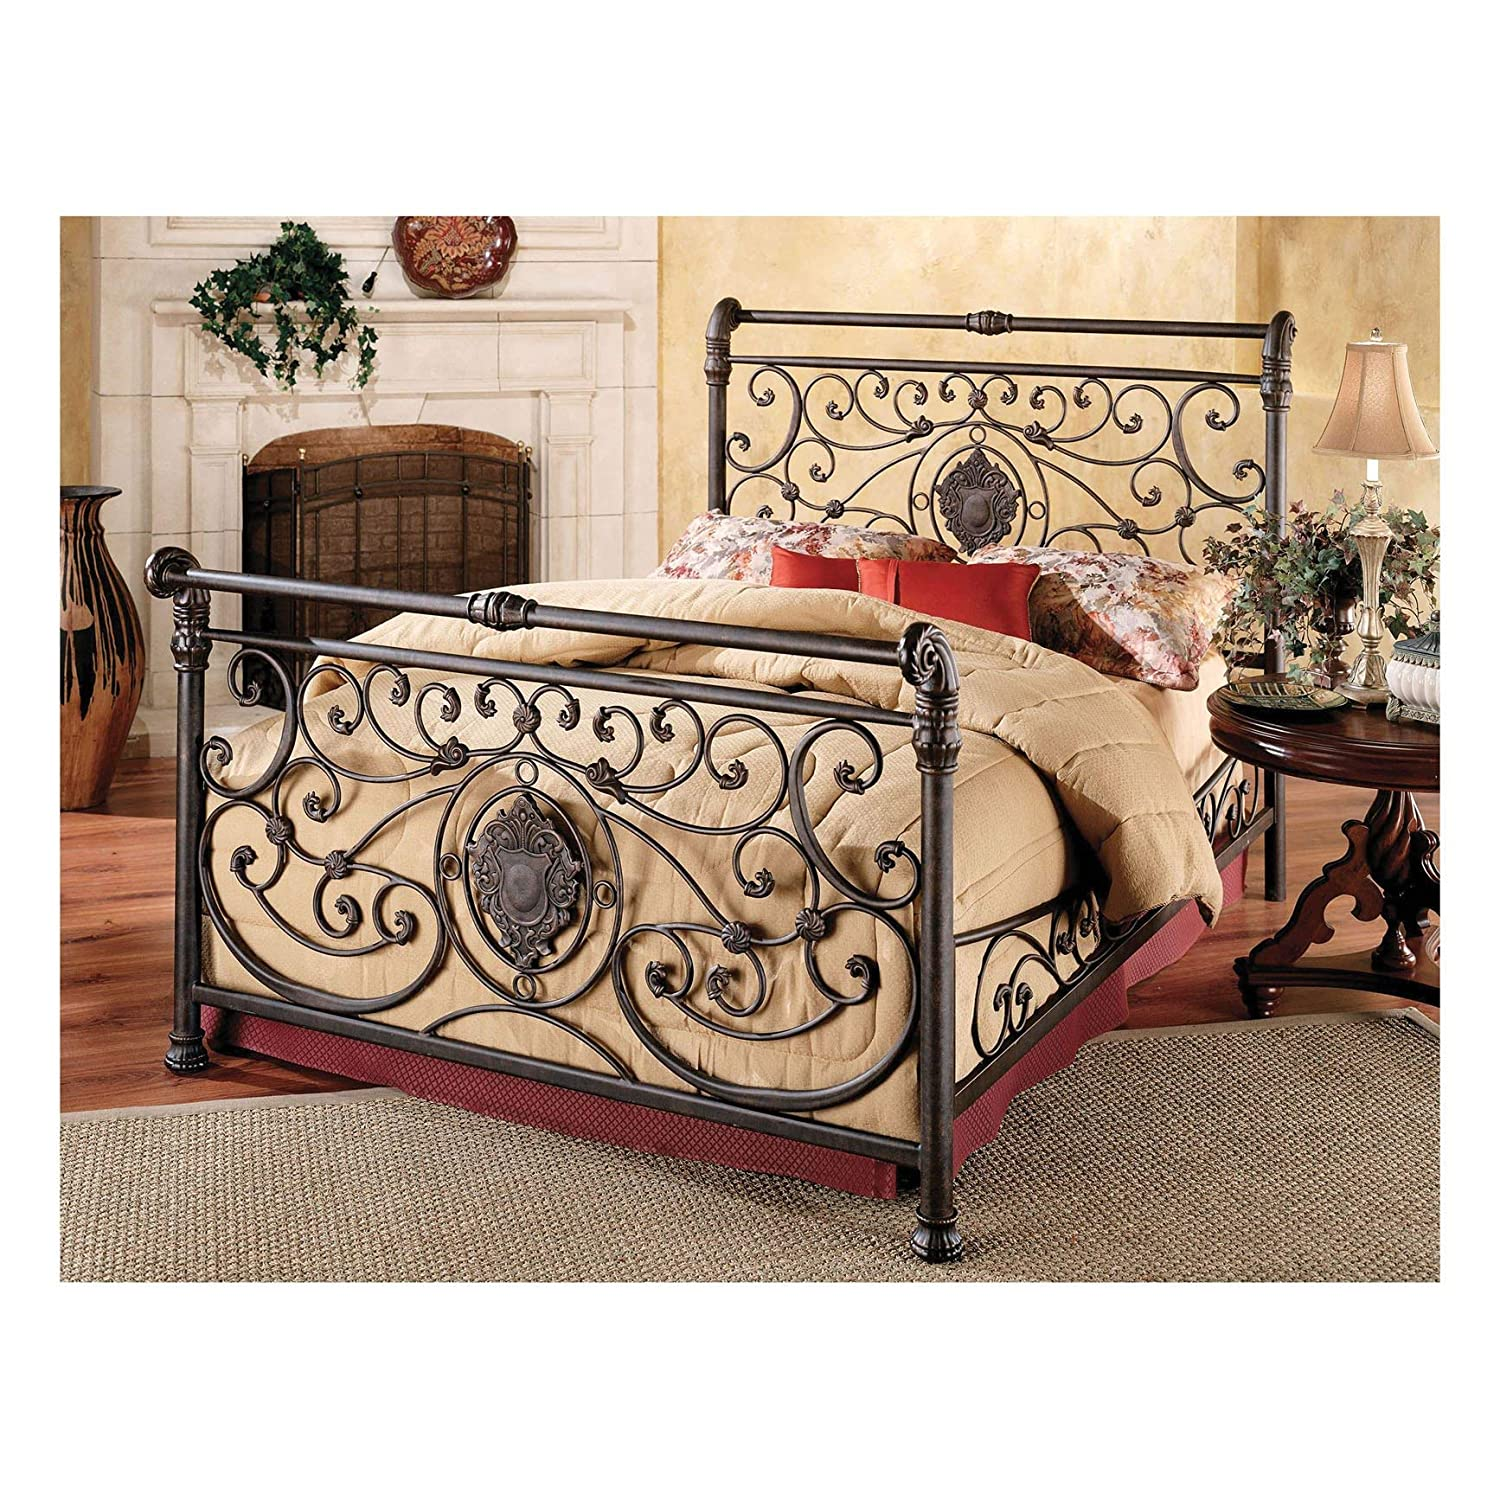 Hillsdale Furniture Mercer Bed Set with with Rails, Queen, Antique Brown